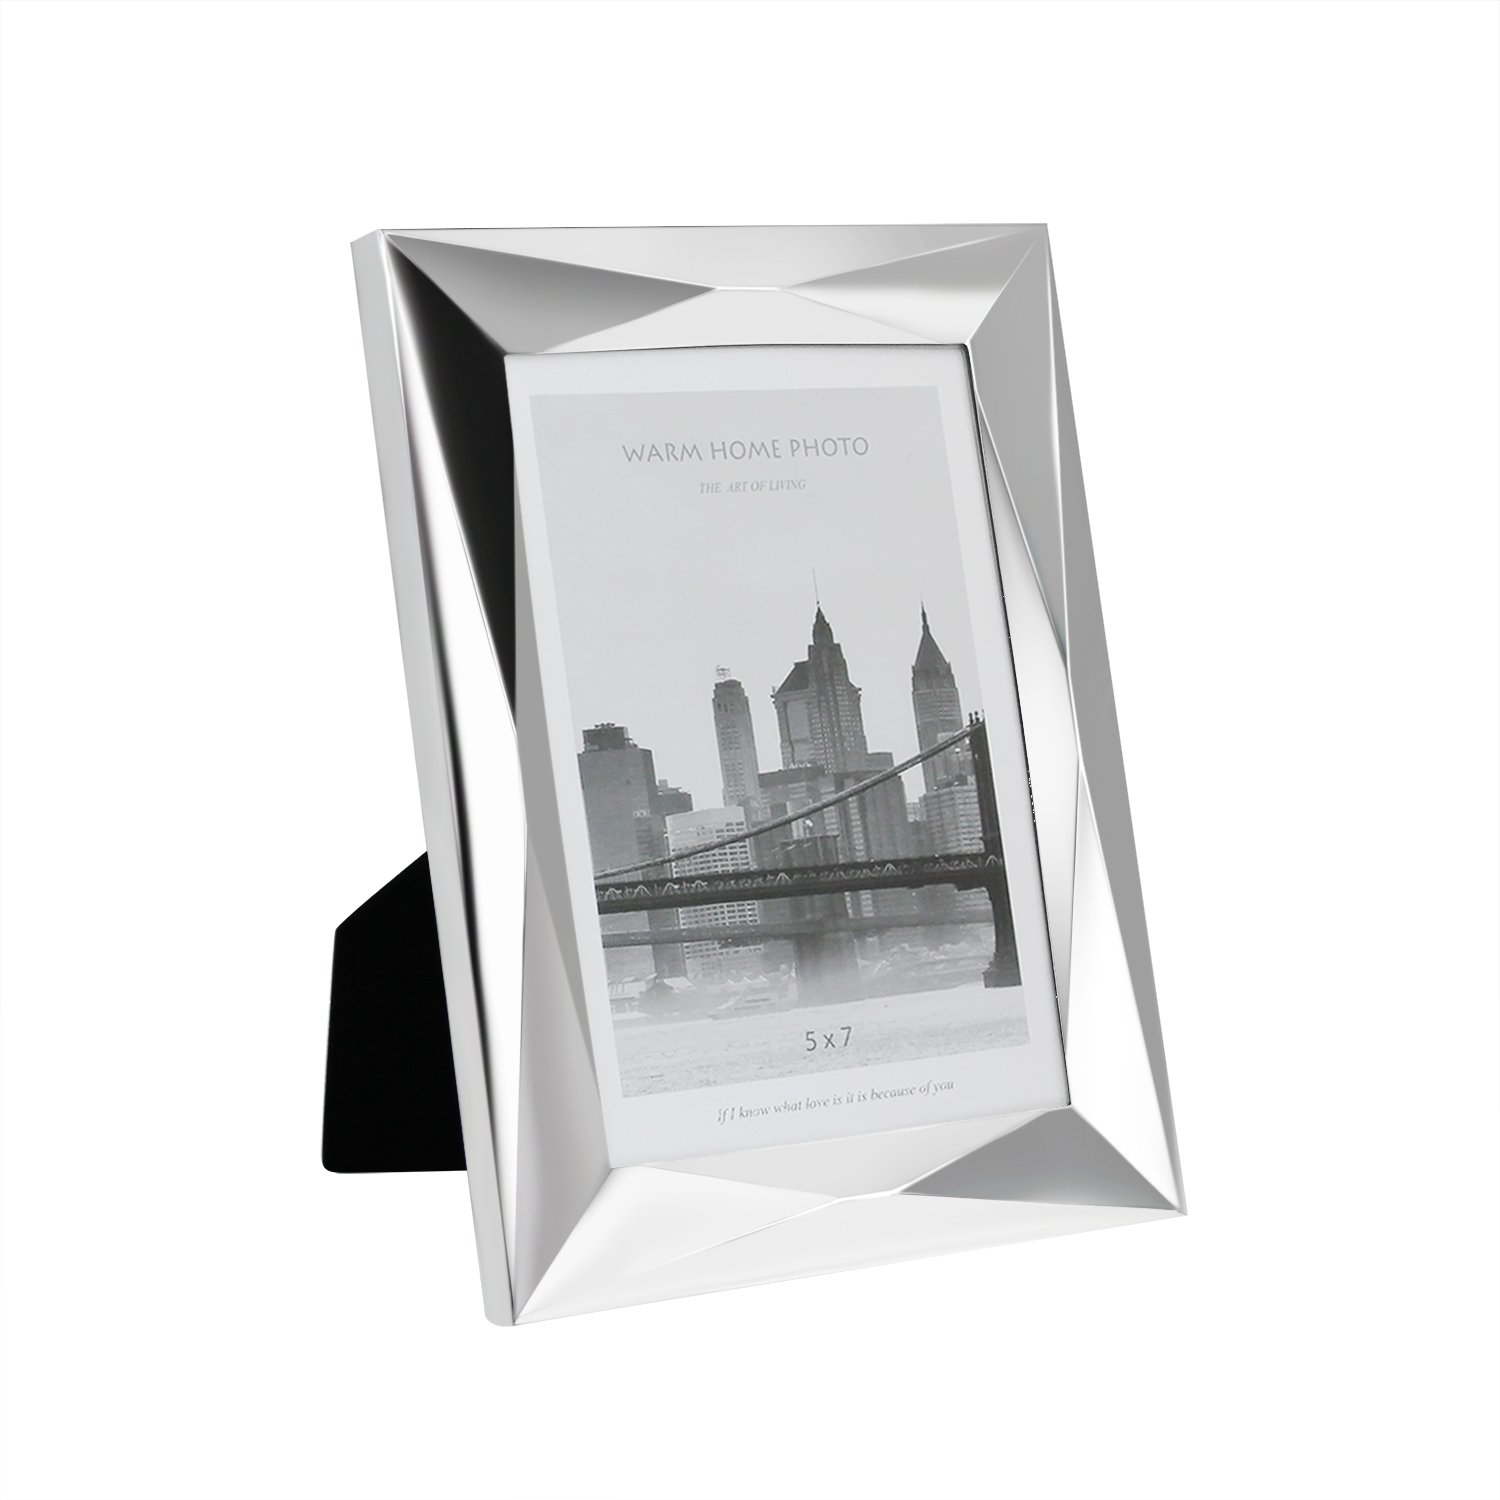 5x7 Photo Frame Freestanding and Wall Mountable Certificate or Picture Frame Portrait & Landscape Made of Electroplating Silver and High Definition Glass with Mat SWEETLF